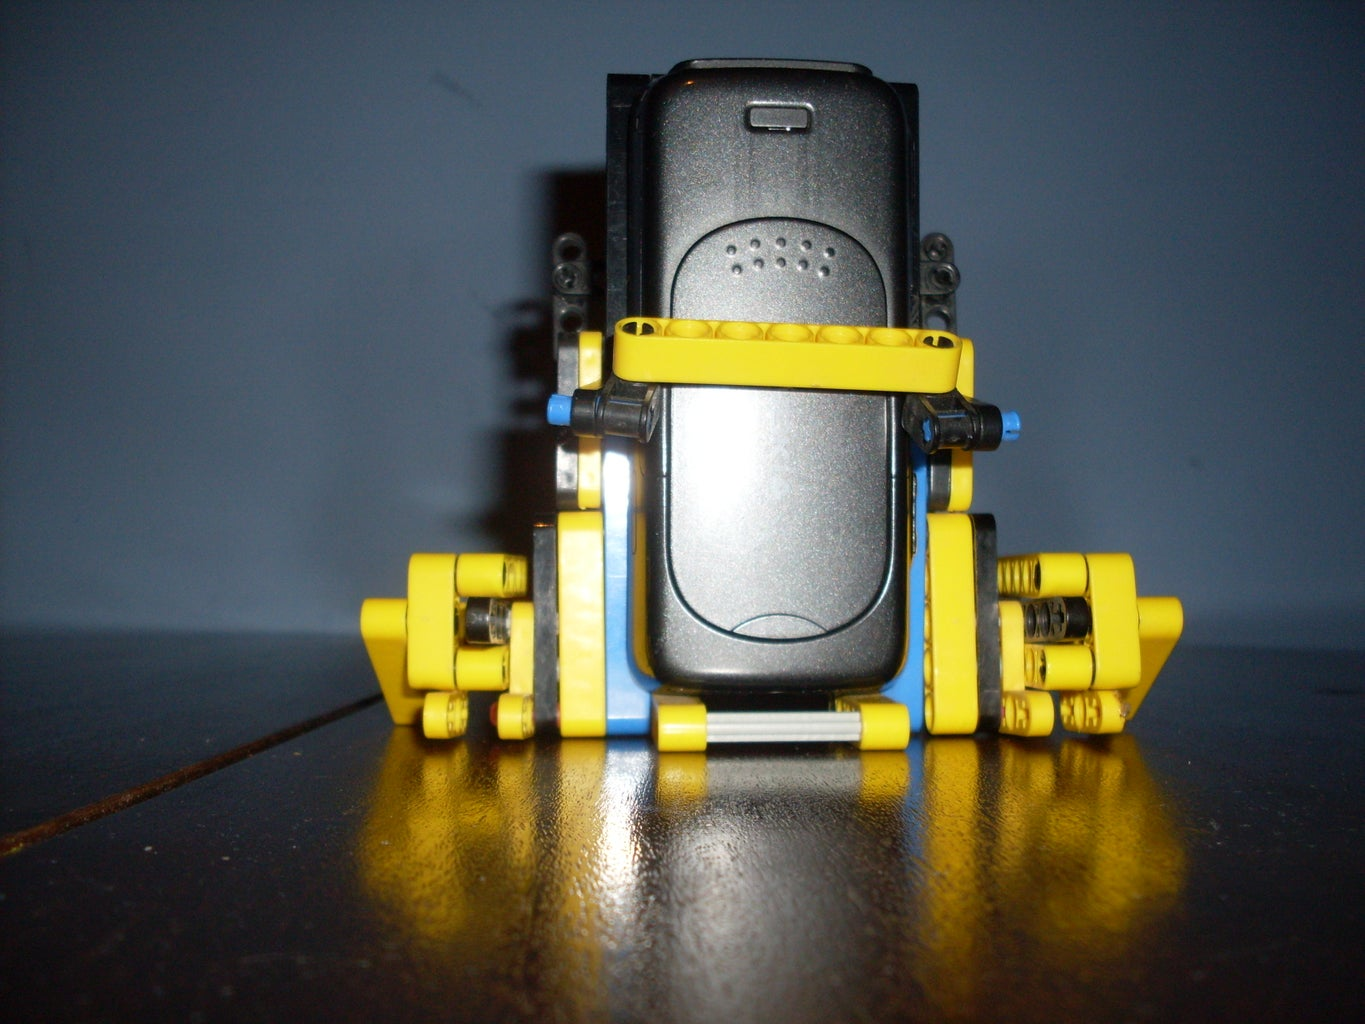 Lego Mobile Phone Projector